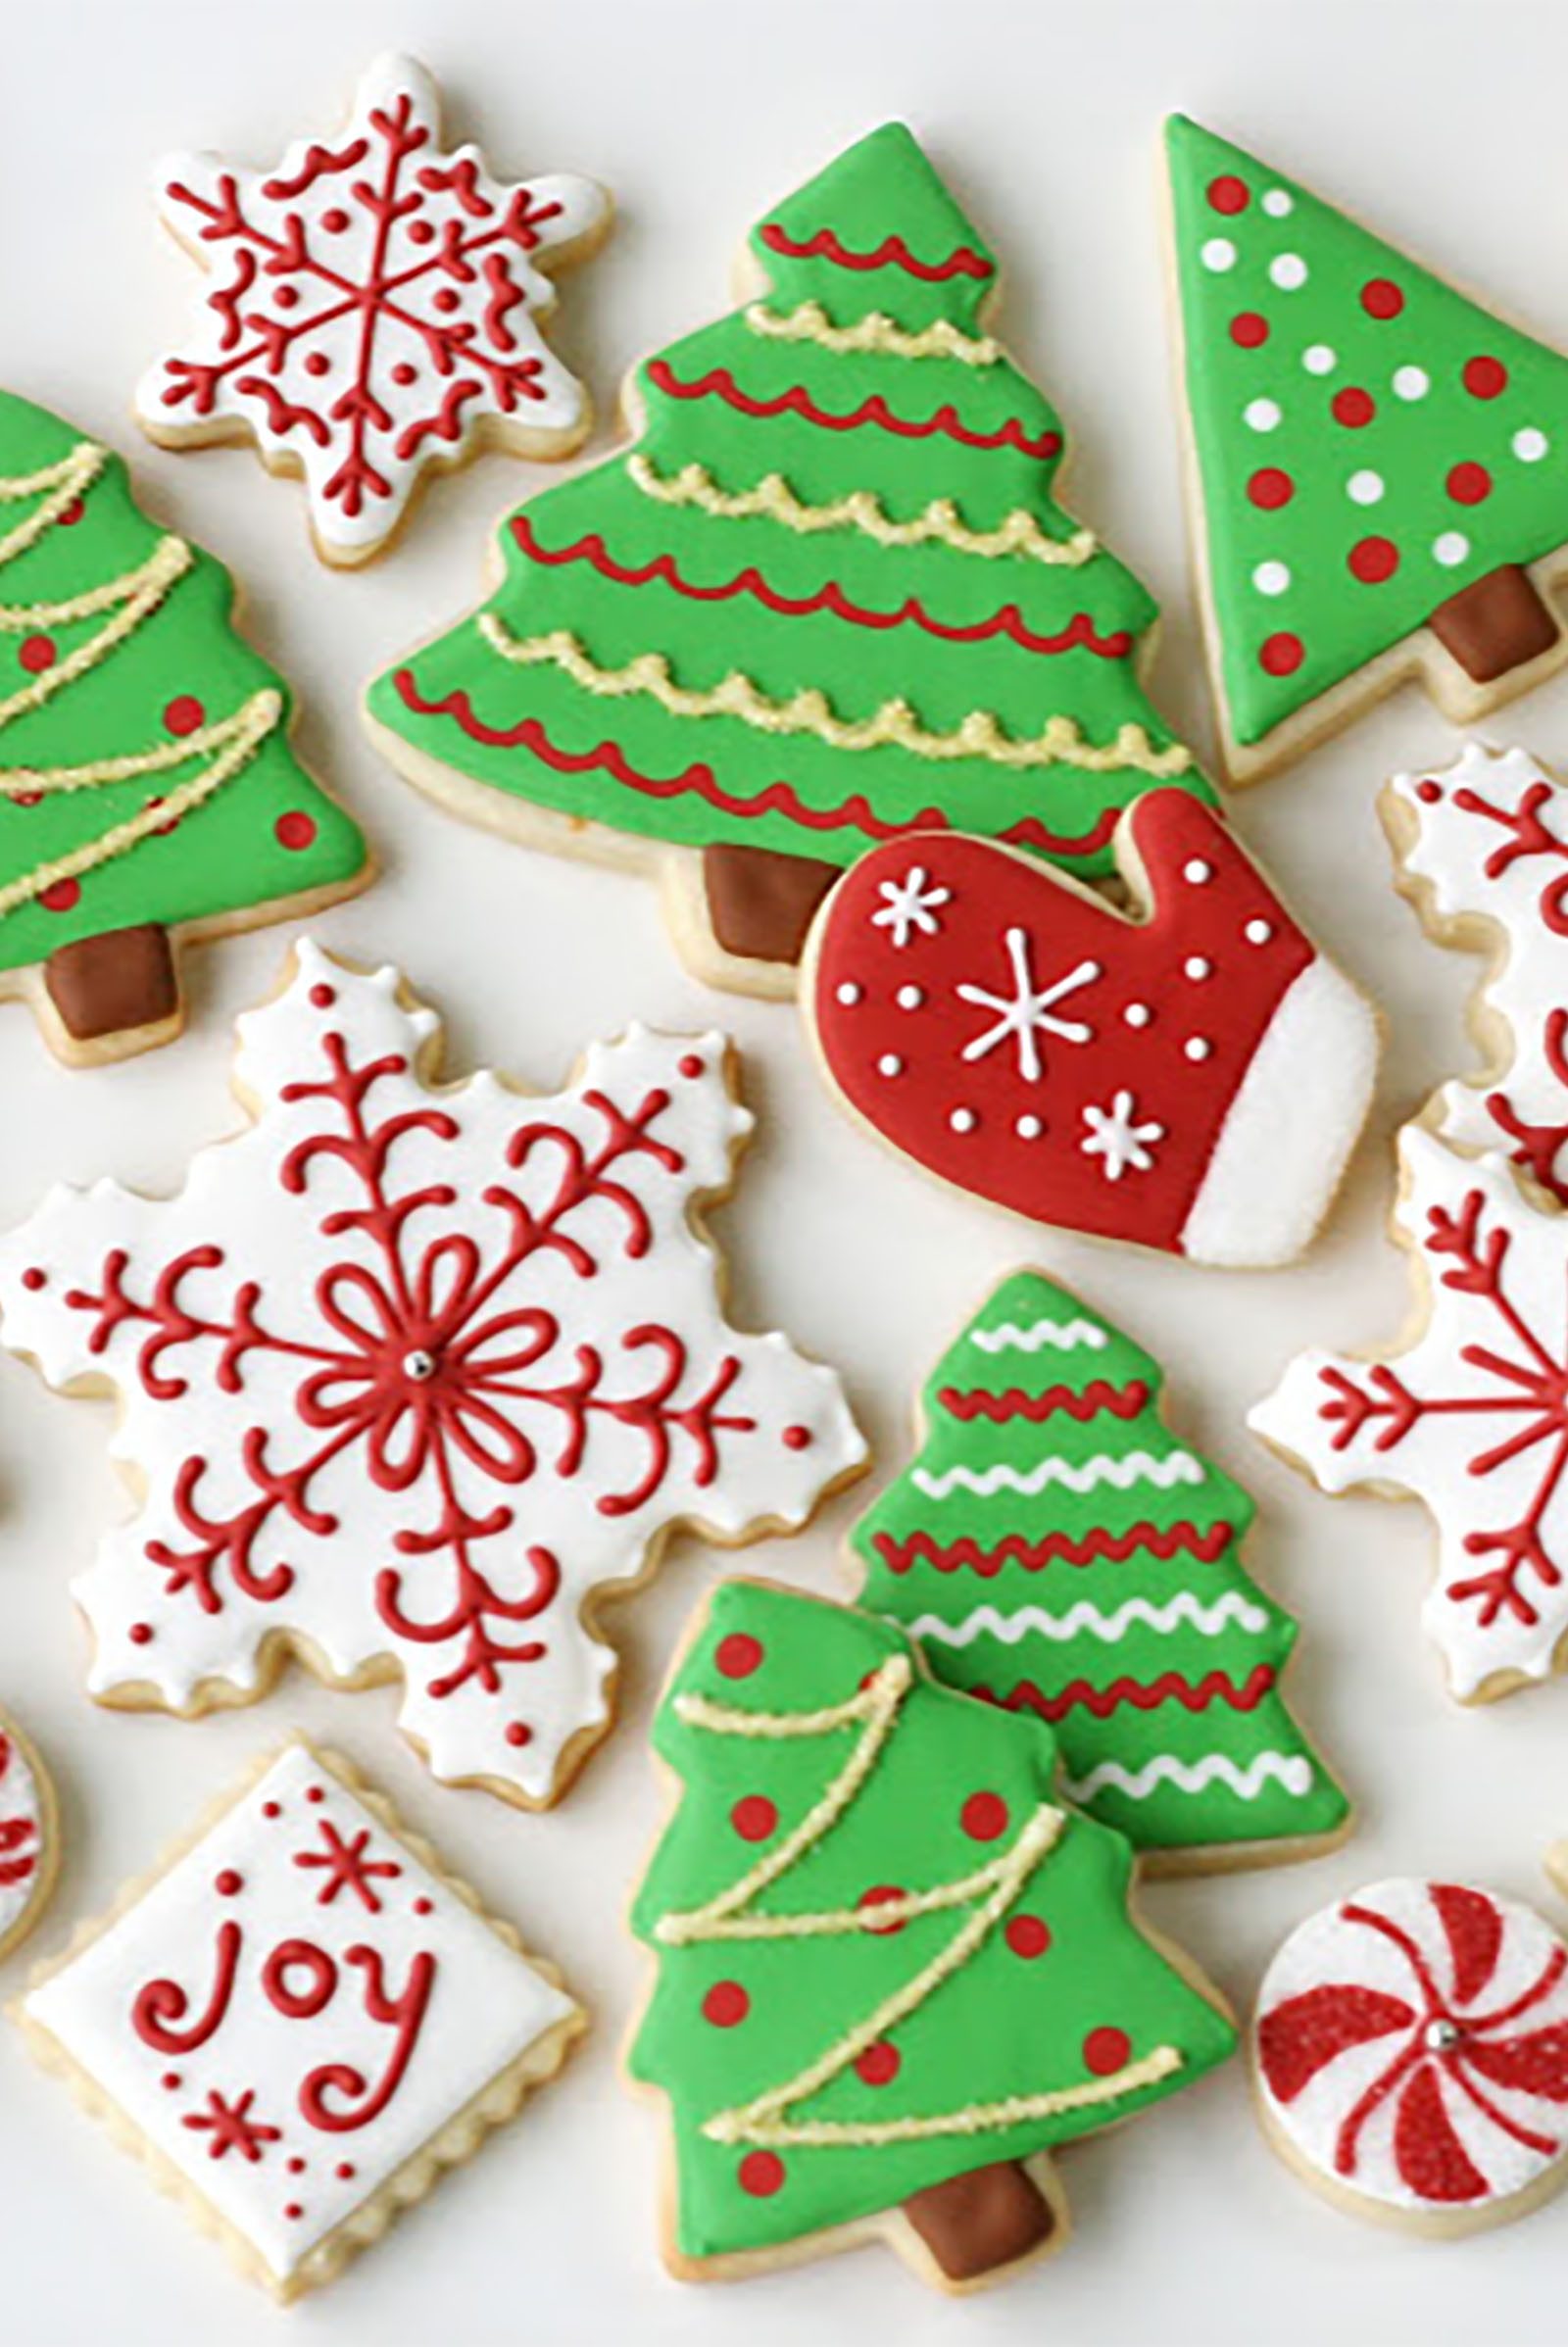 Christmas Cookies Ideas  Ideas How To Decorate Christmas Cookies